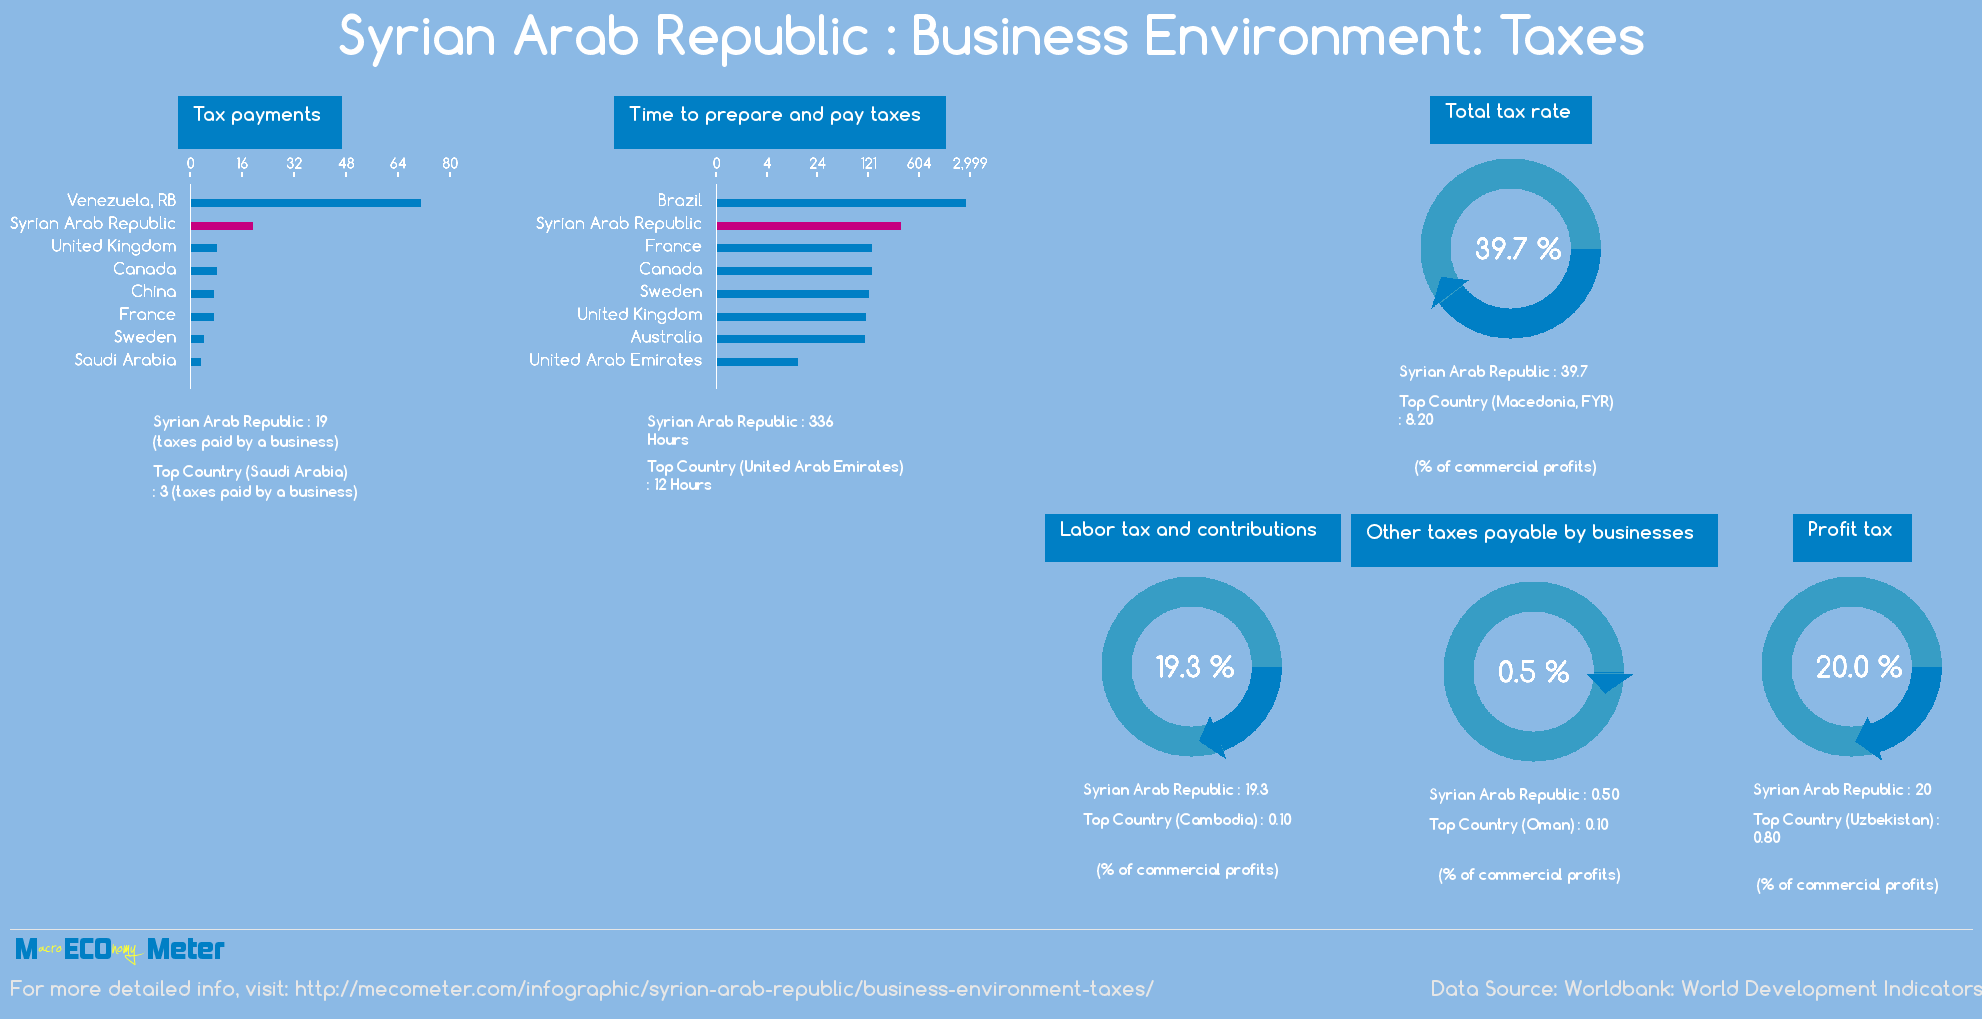 Syrian Arab Republic : Business Environment: Taxes